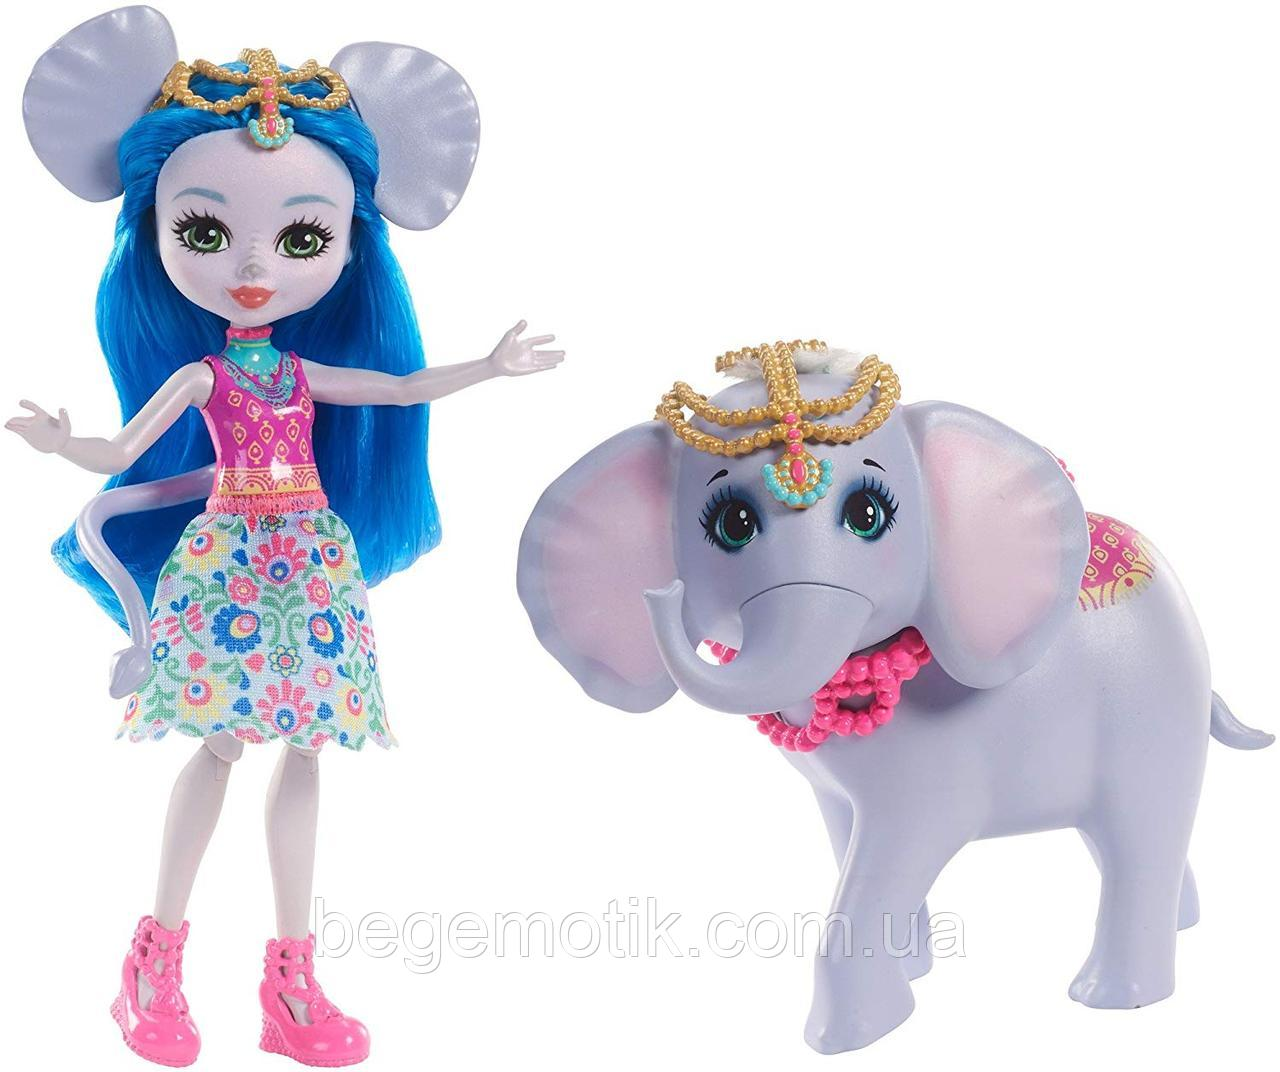 Кукла Энчантималс Екатерина Слон и слоник Антик Enchantimals Ekaterina Elephant Dolls FKY73